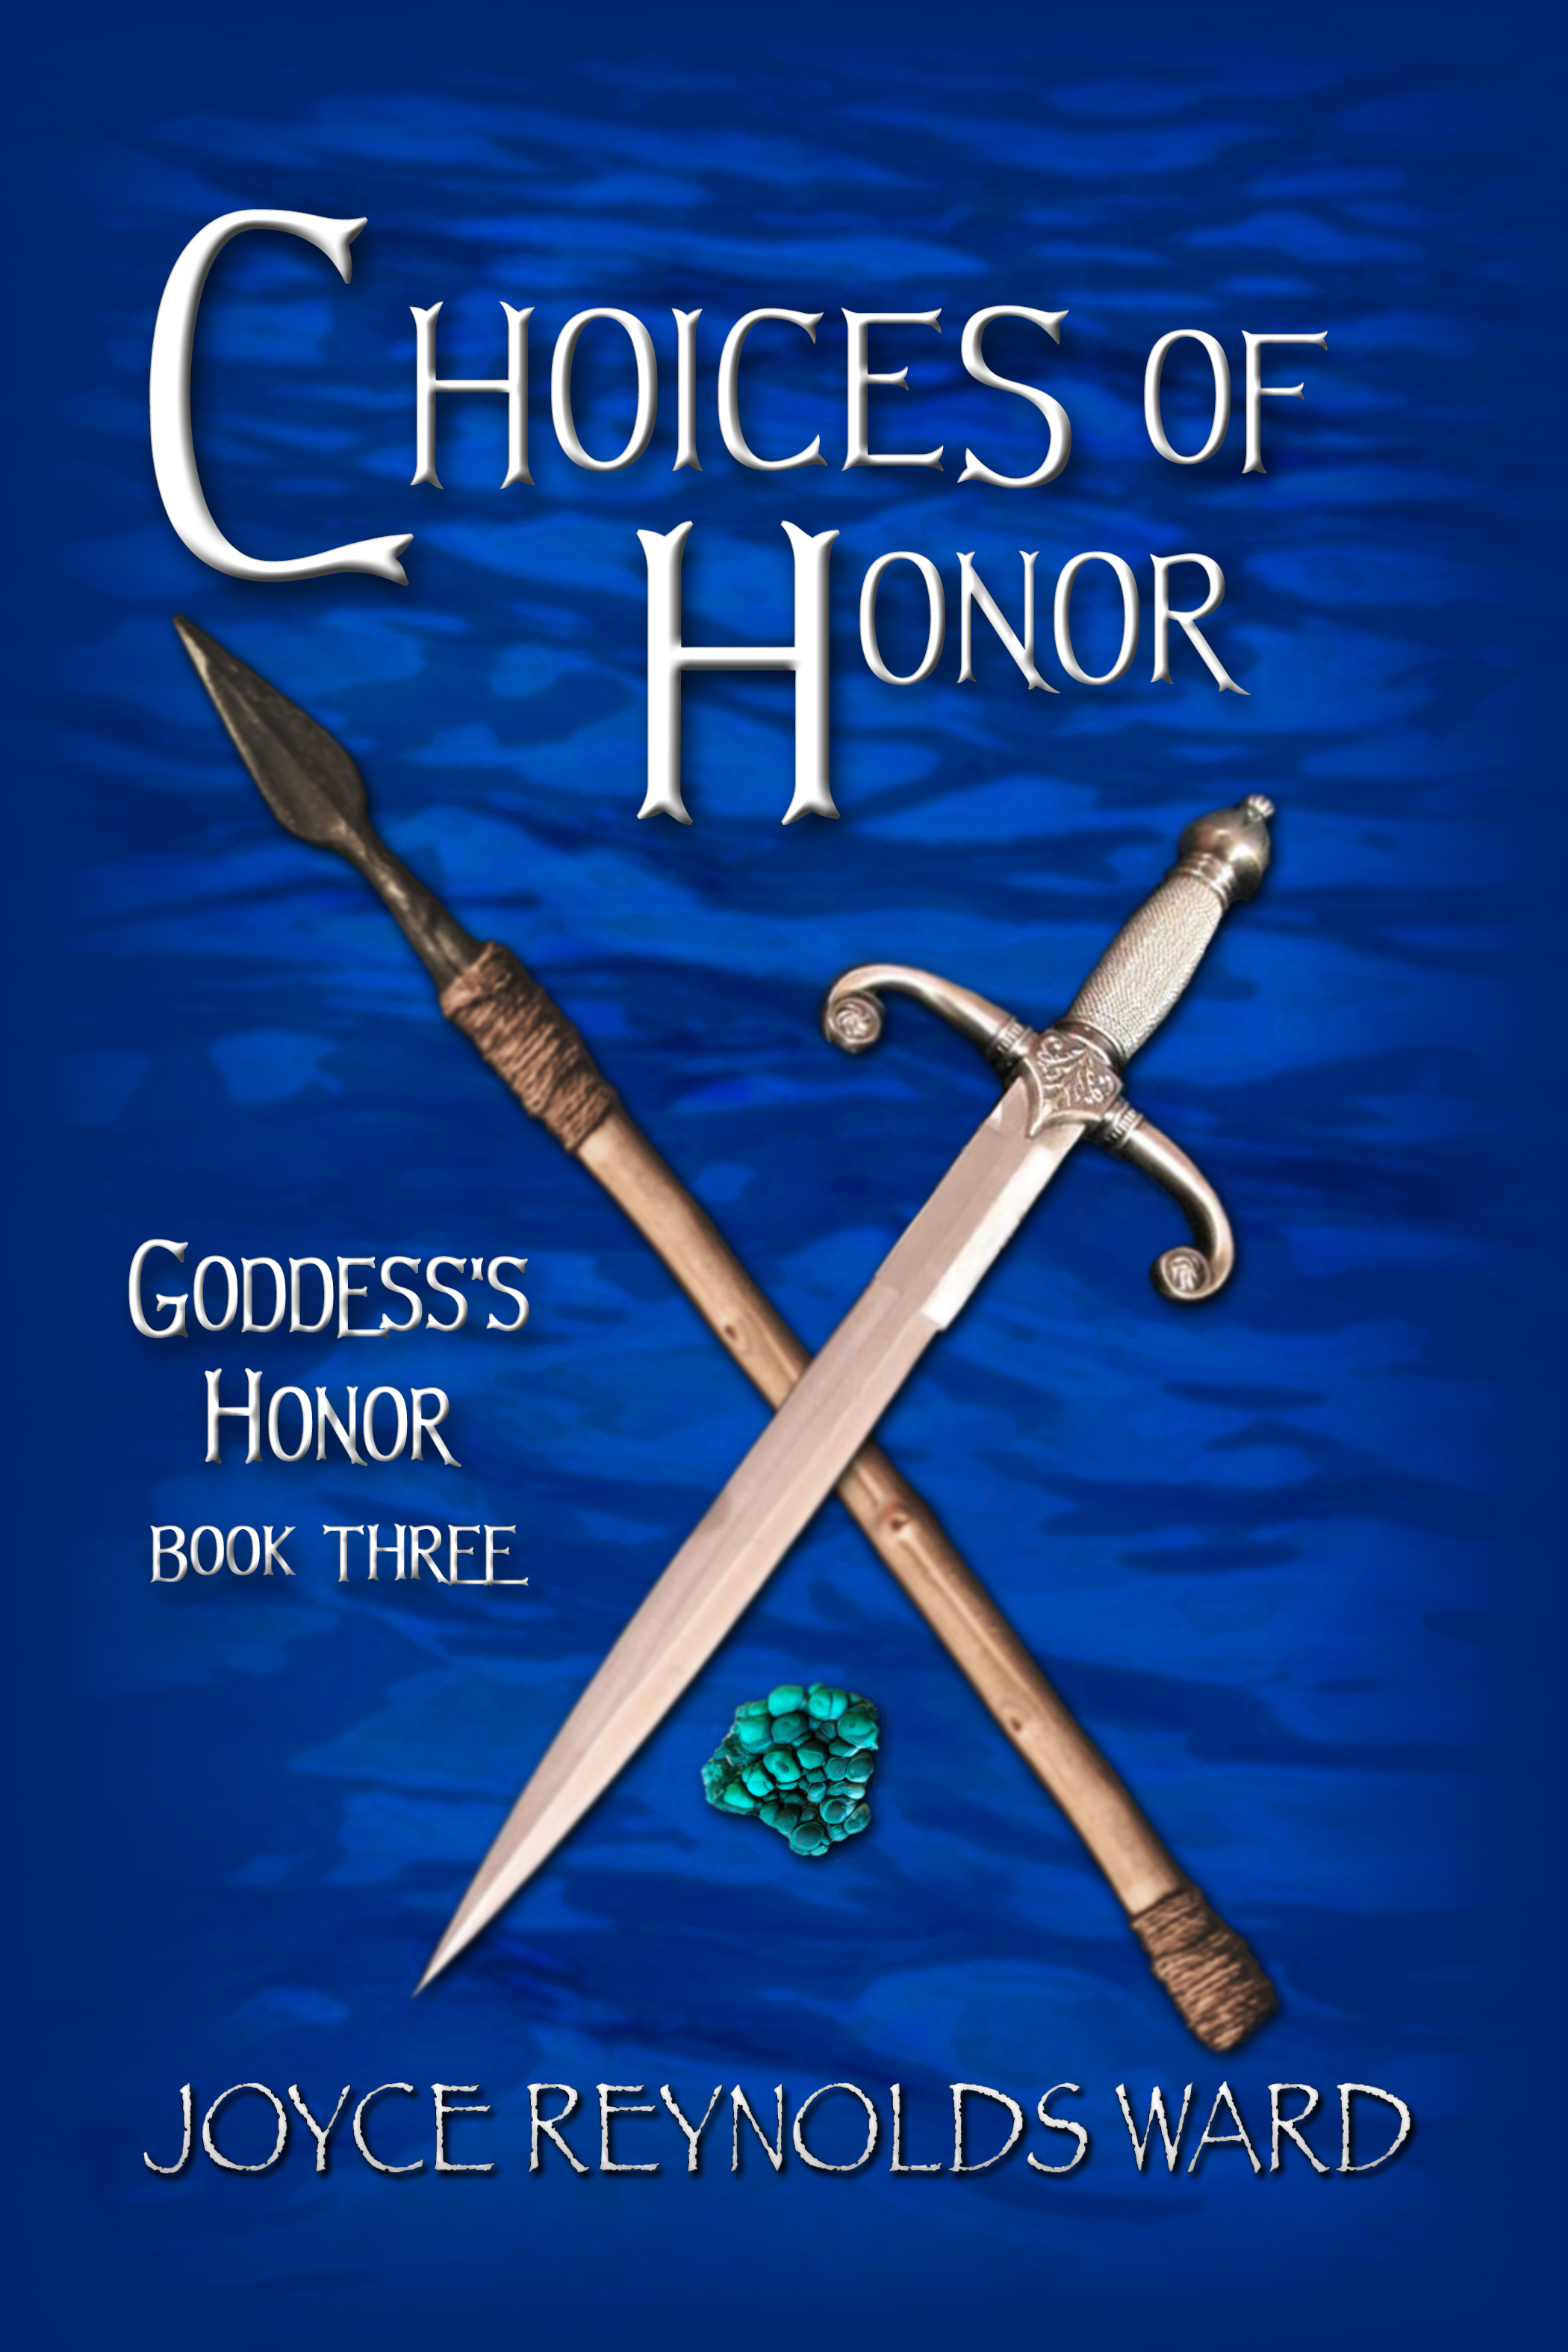 Choices of honor front cover